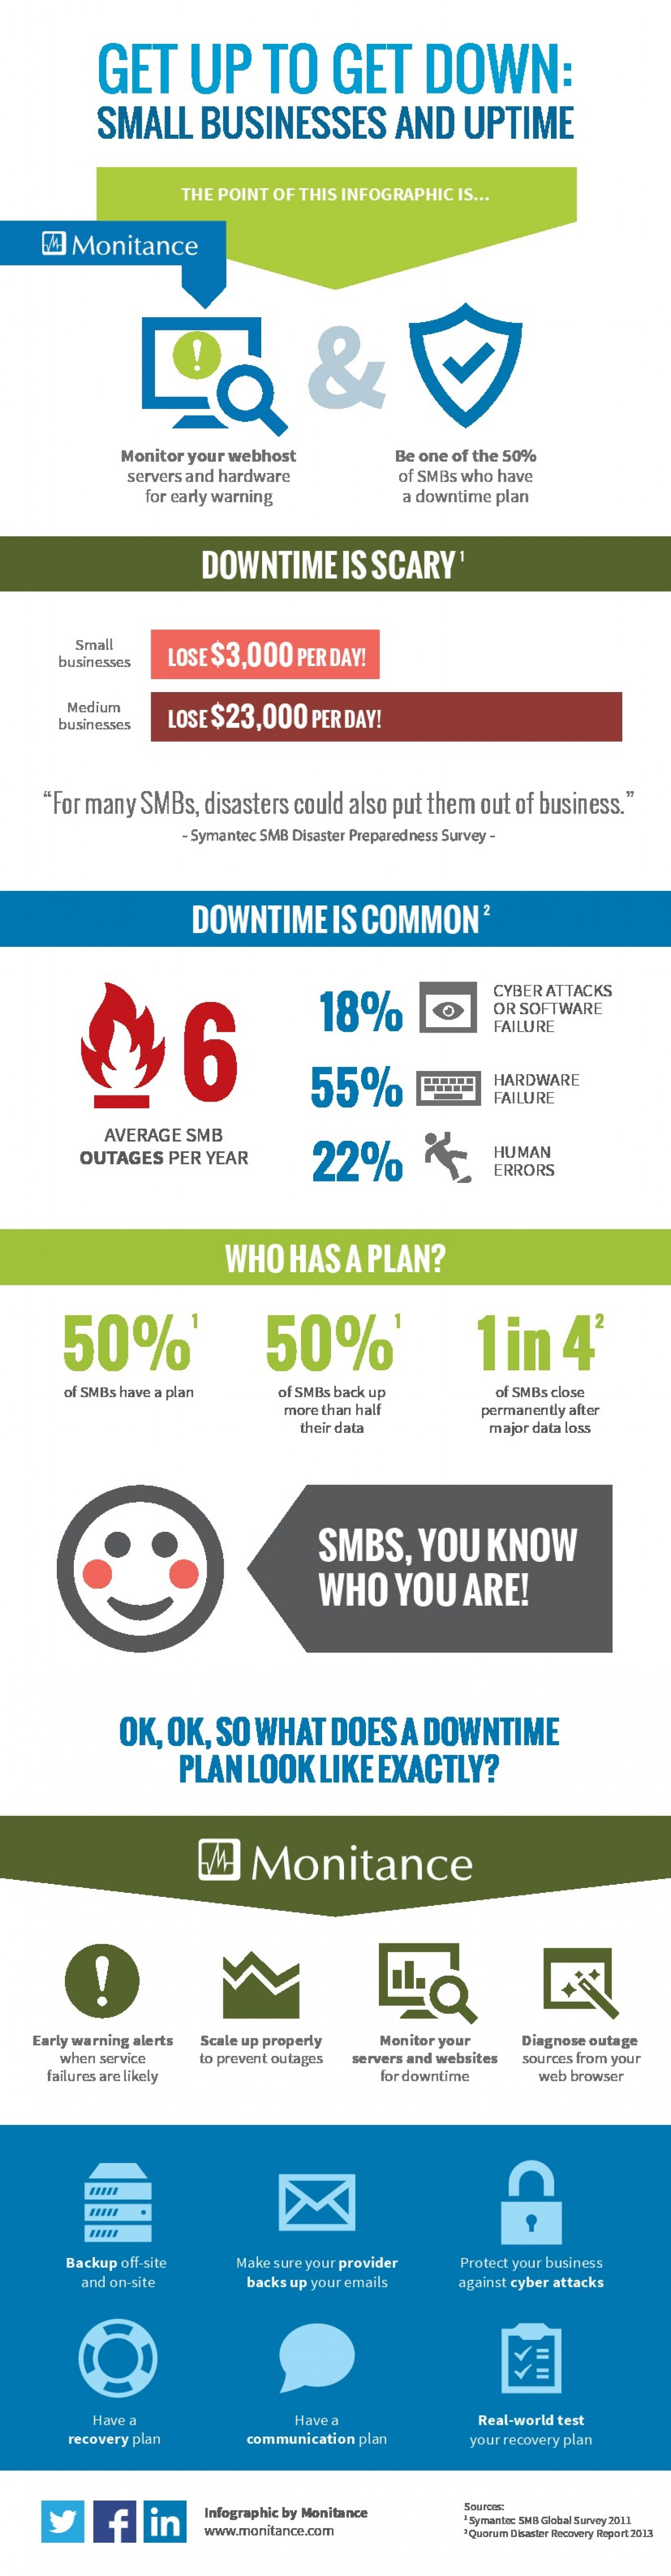 Stop Buying Downtime - Invest in Uptime #Infographic #smb #msp #backup